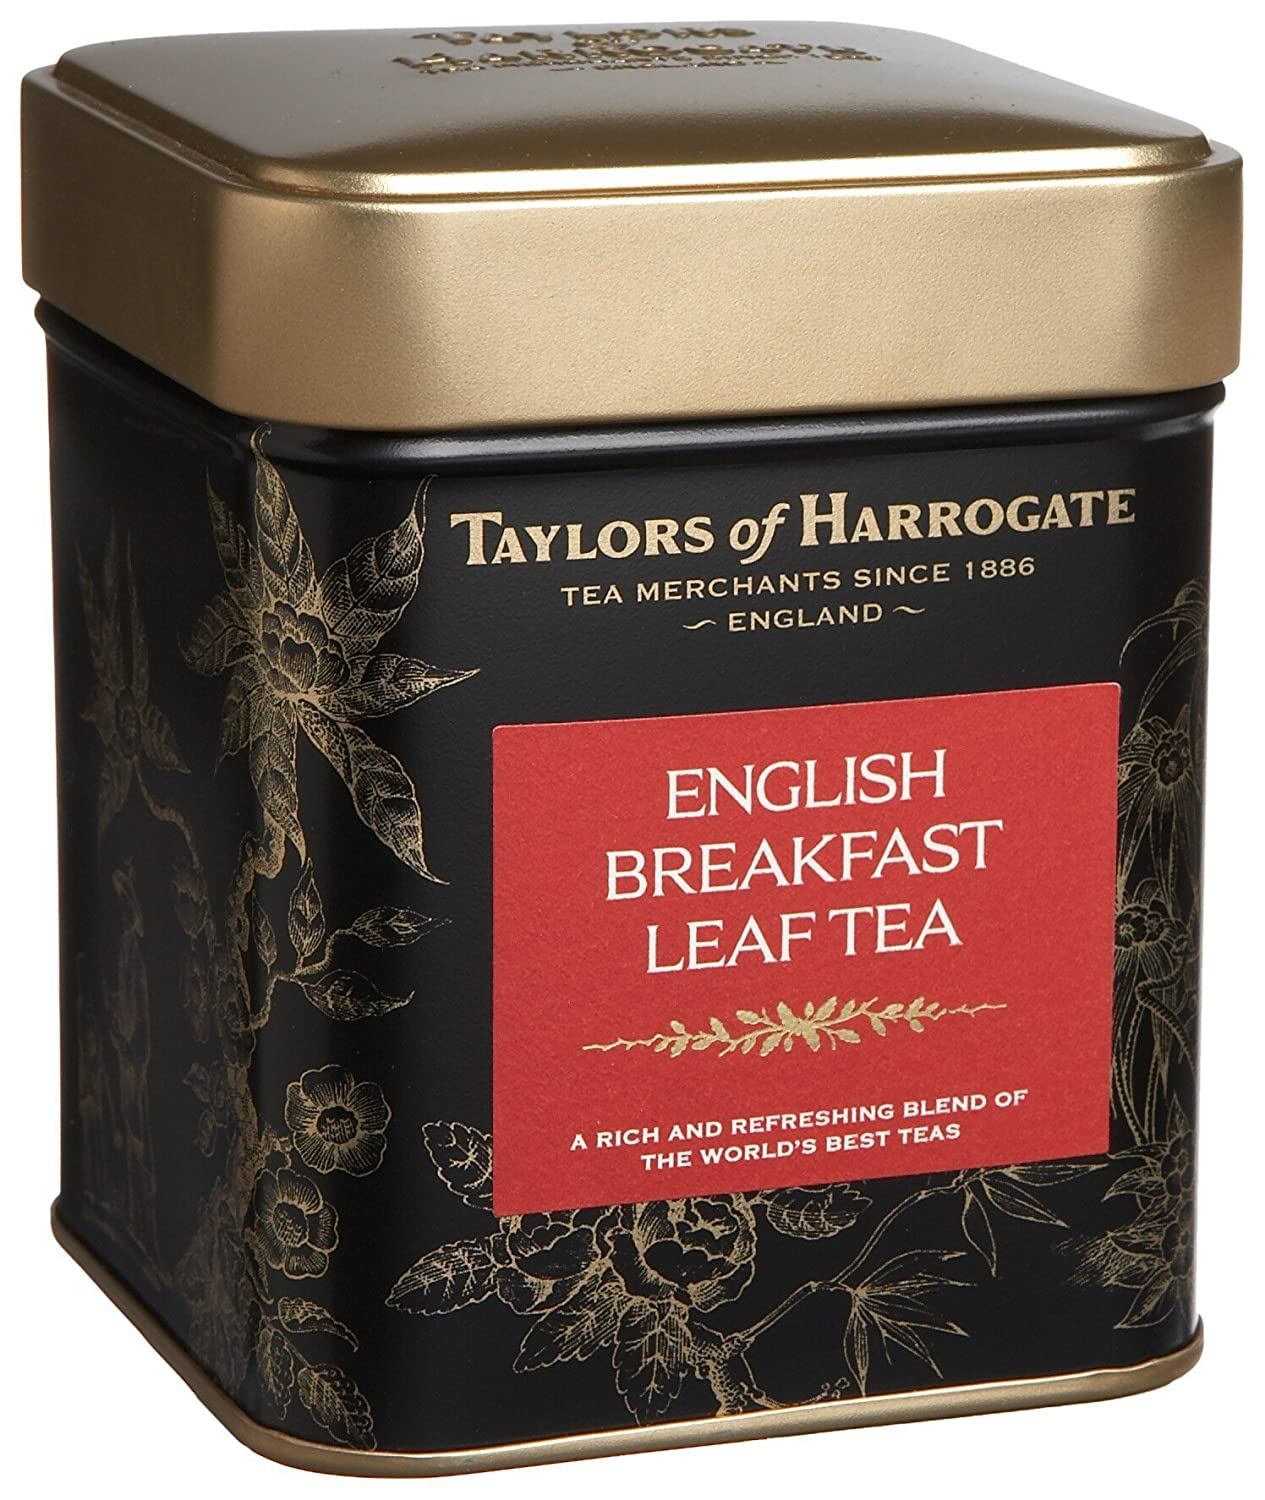 30% Off Taylors of Harrogate English Breakfast Leaf Tea, Loose Leaf, 4.41-Ounce Tins (Pack of 2)